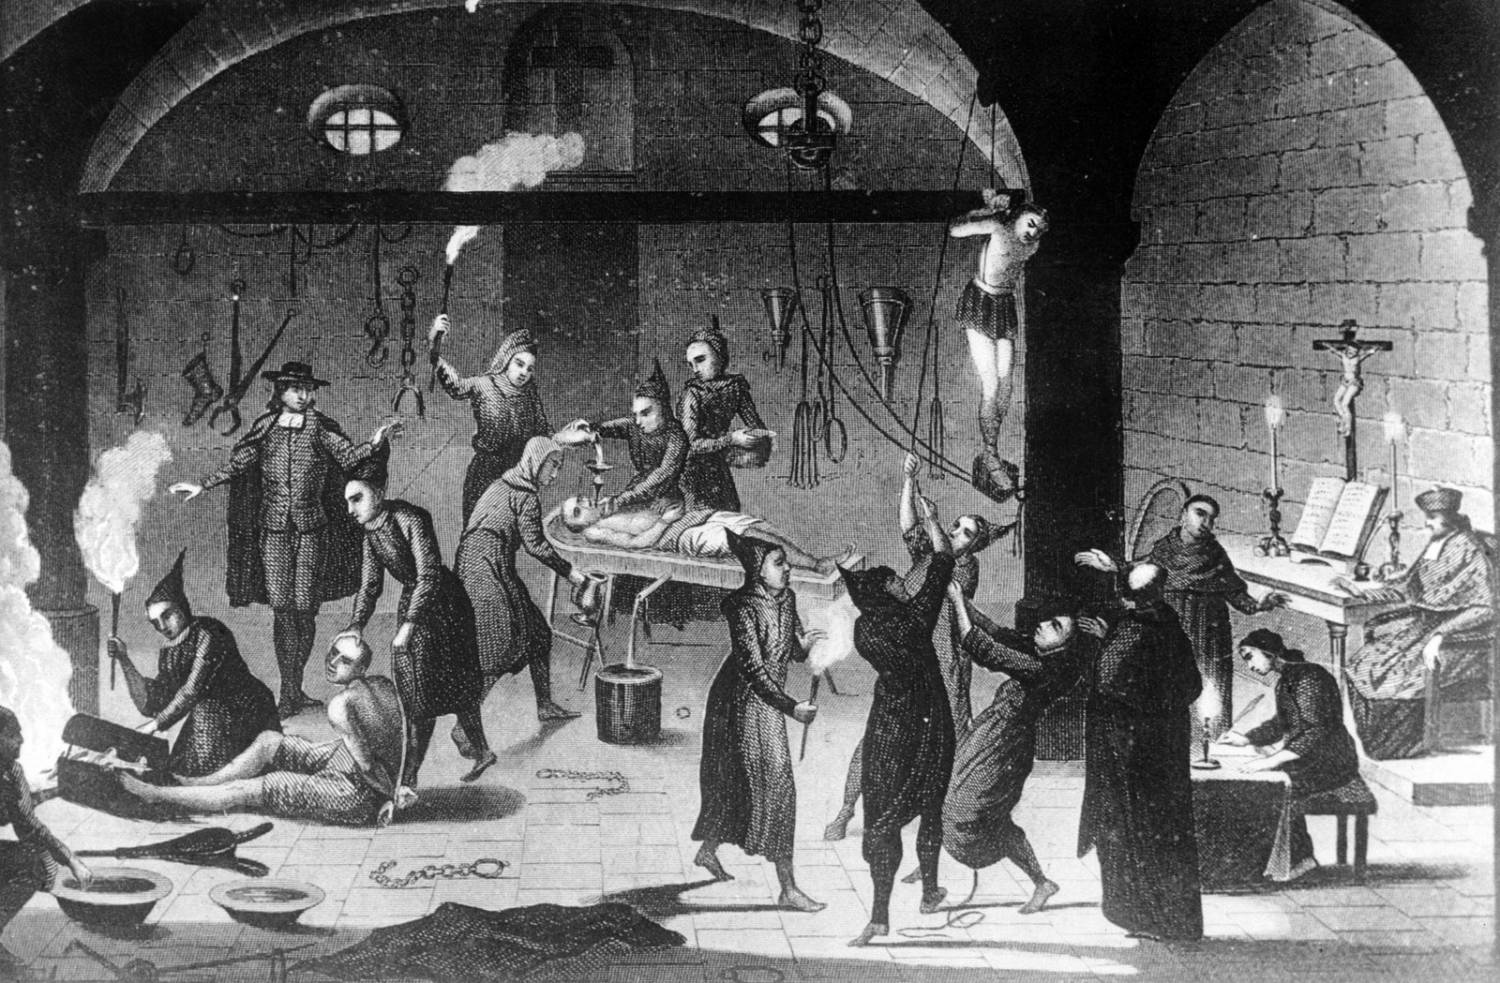 spanish inquisition 1480 essay Spanish inquisition was the papal inquisition which was an ecclesiastical tribunal proceedings began in 1480 inquisition, inquisition essay writing help.